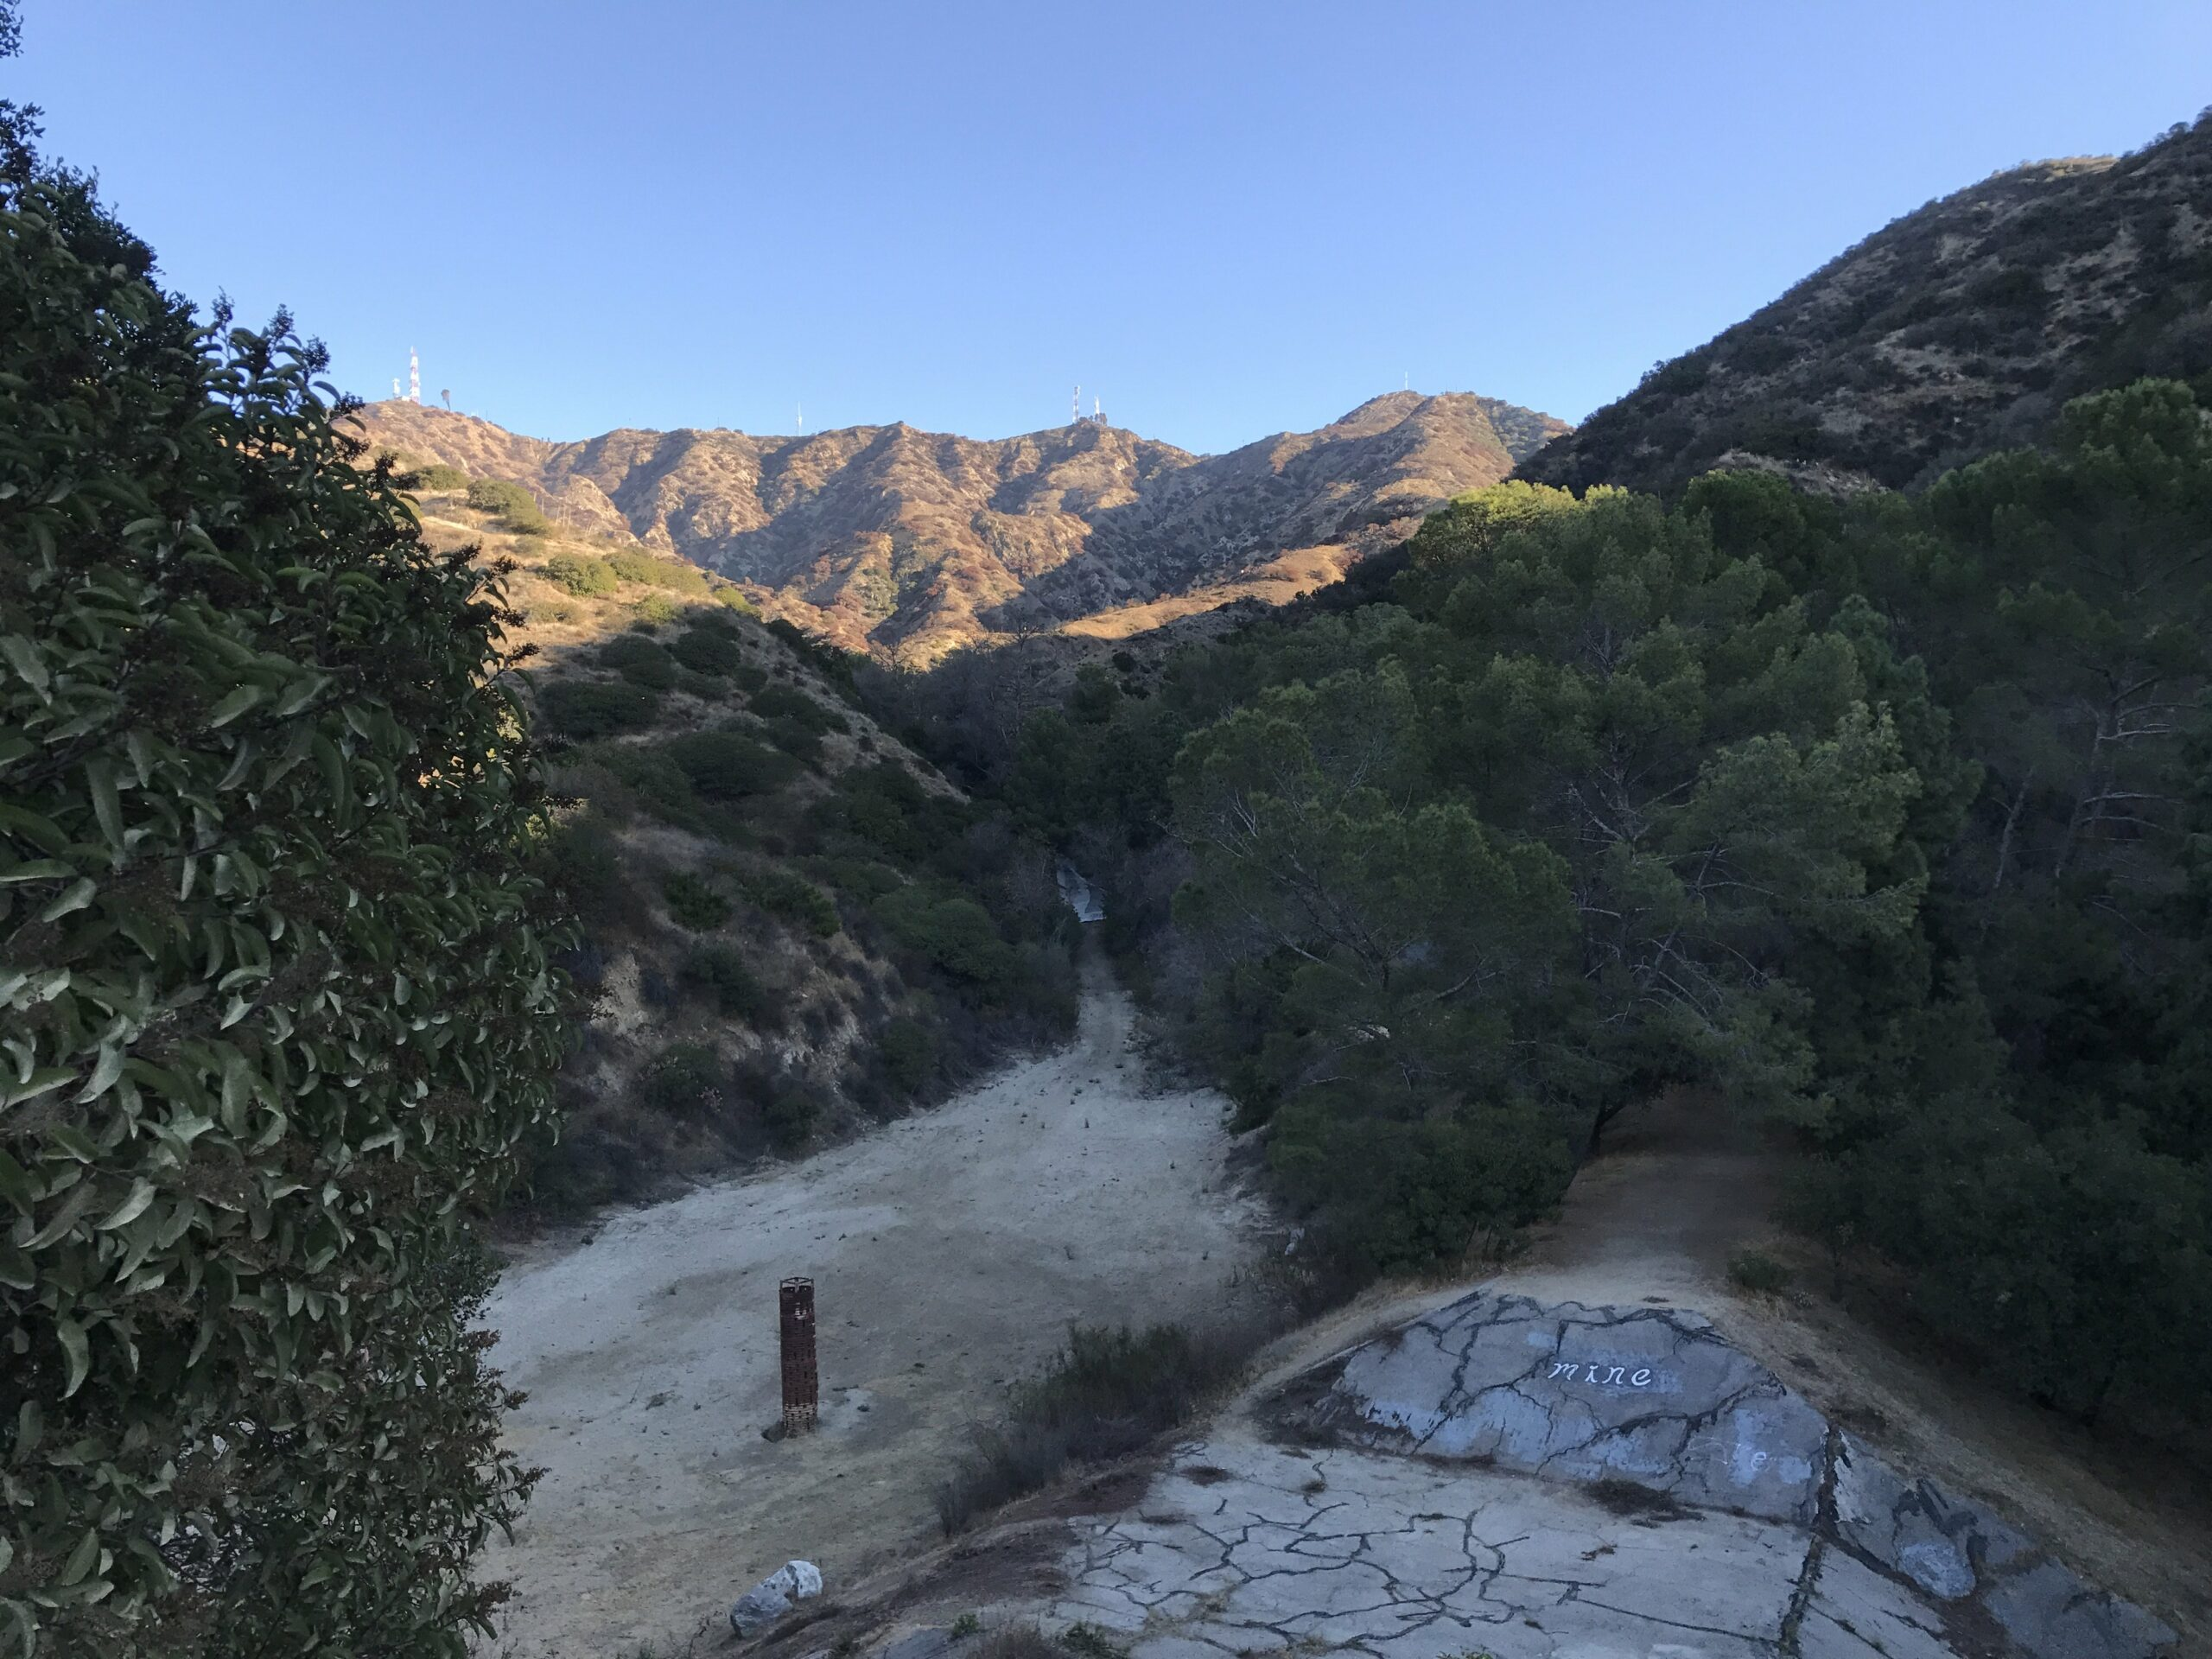 wildwood canyon park